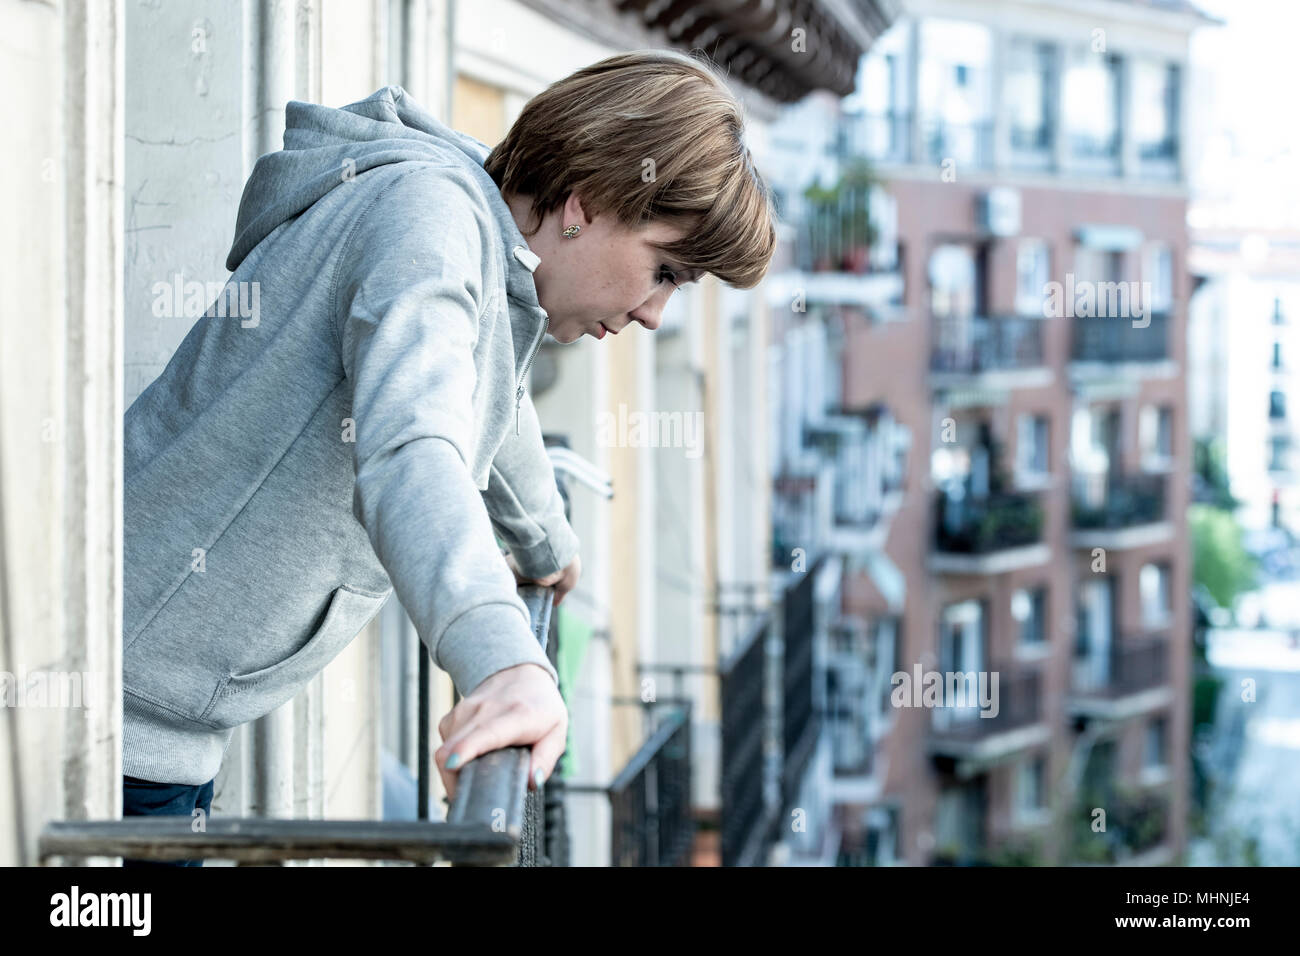 young beautiful depressed lonely woman with depression and anxiety feeling miserable and hopeless looking down the street on the balcony at home. In d - Stock Image